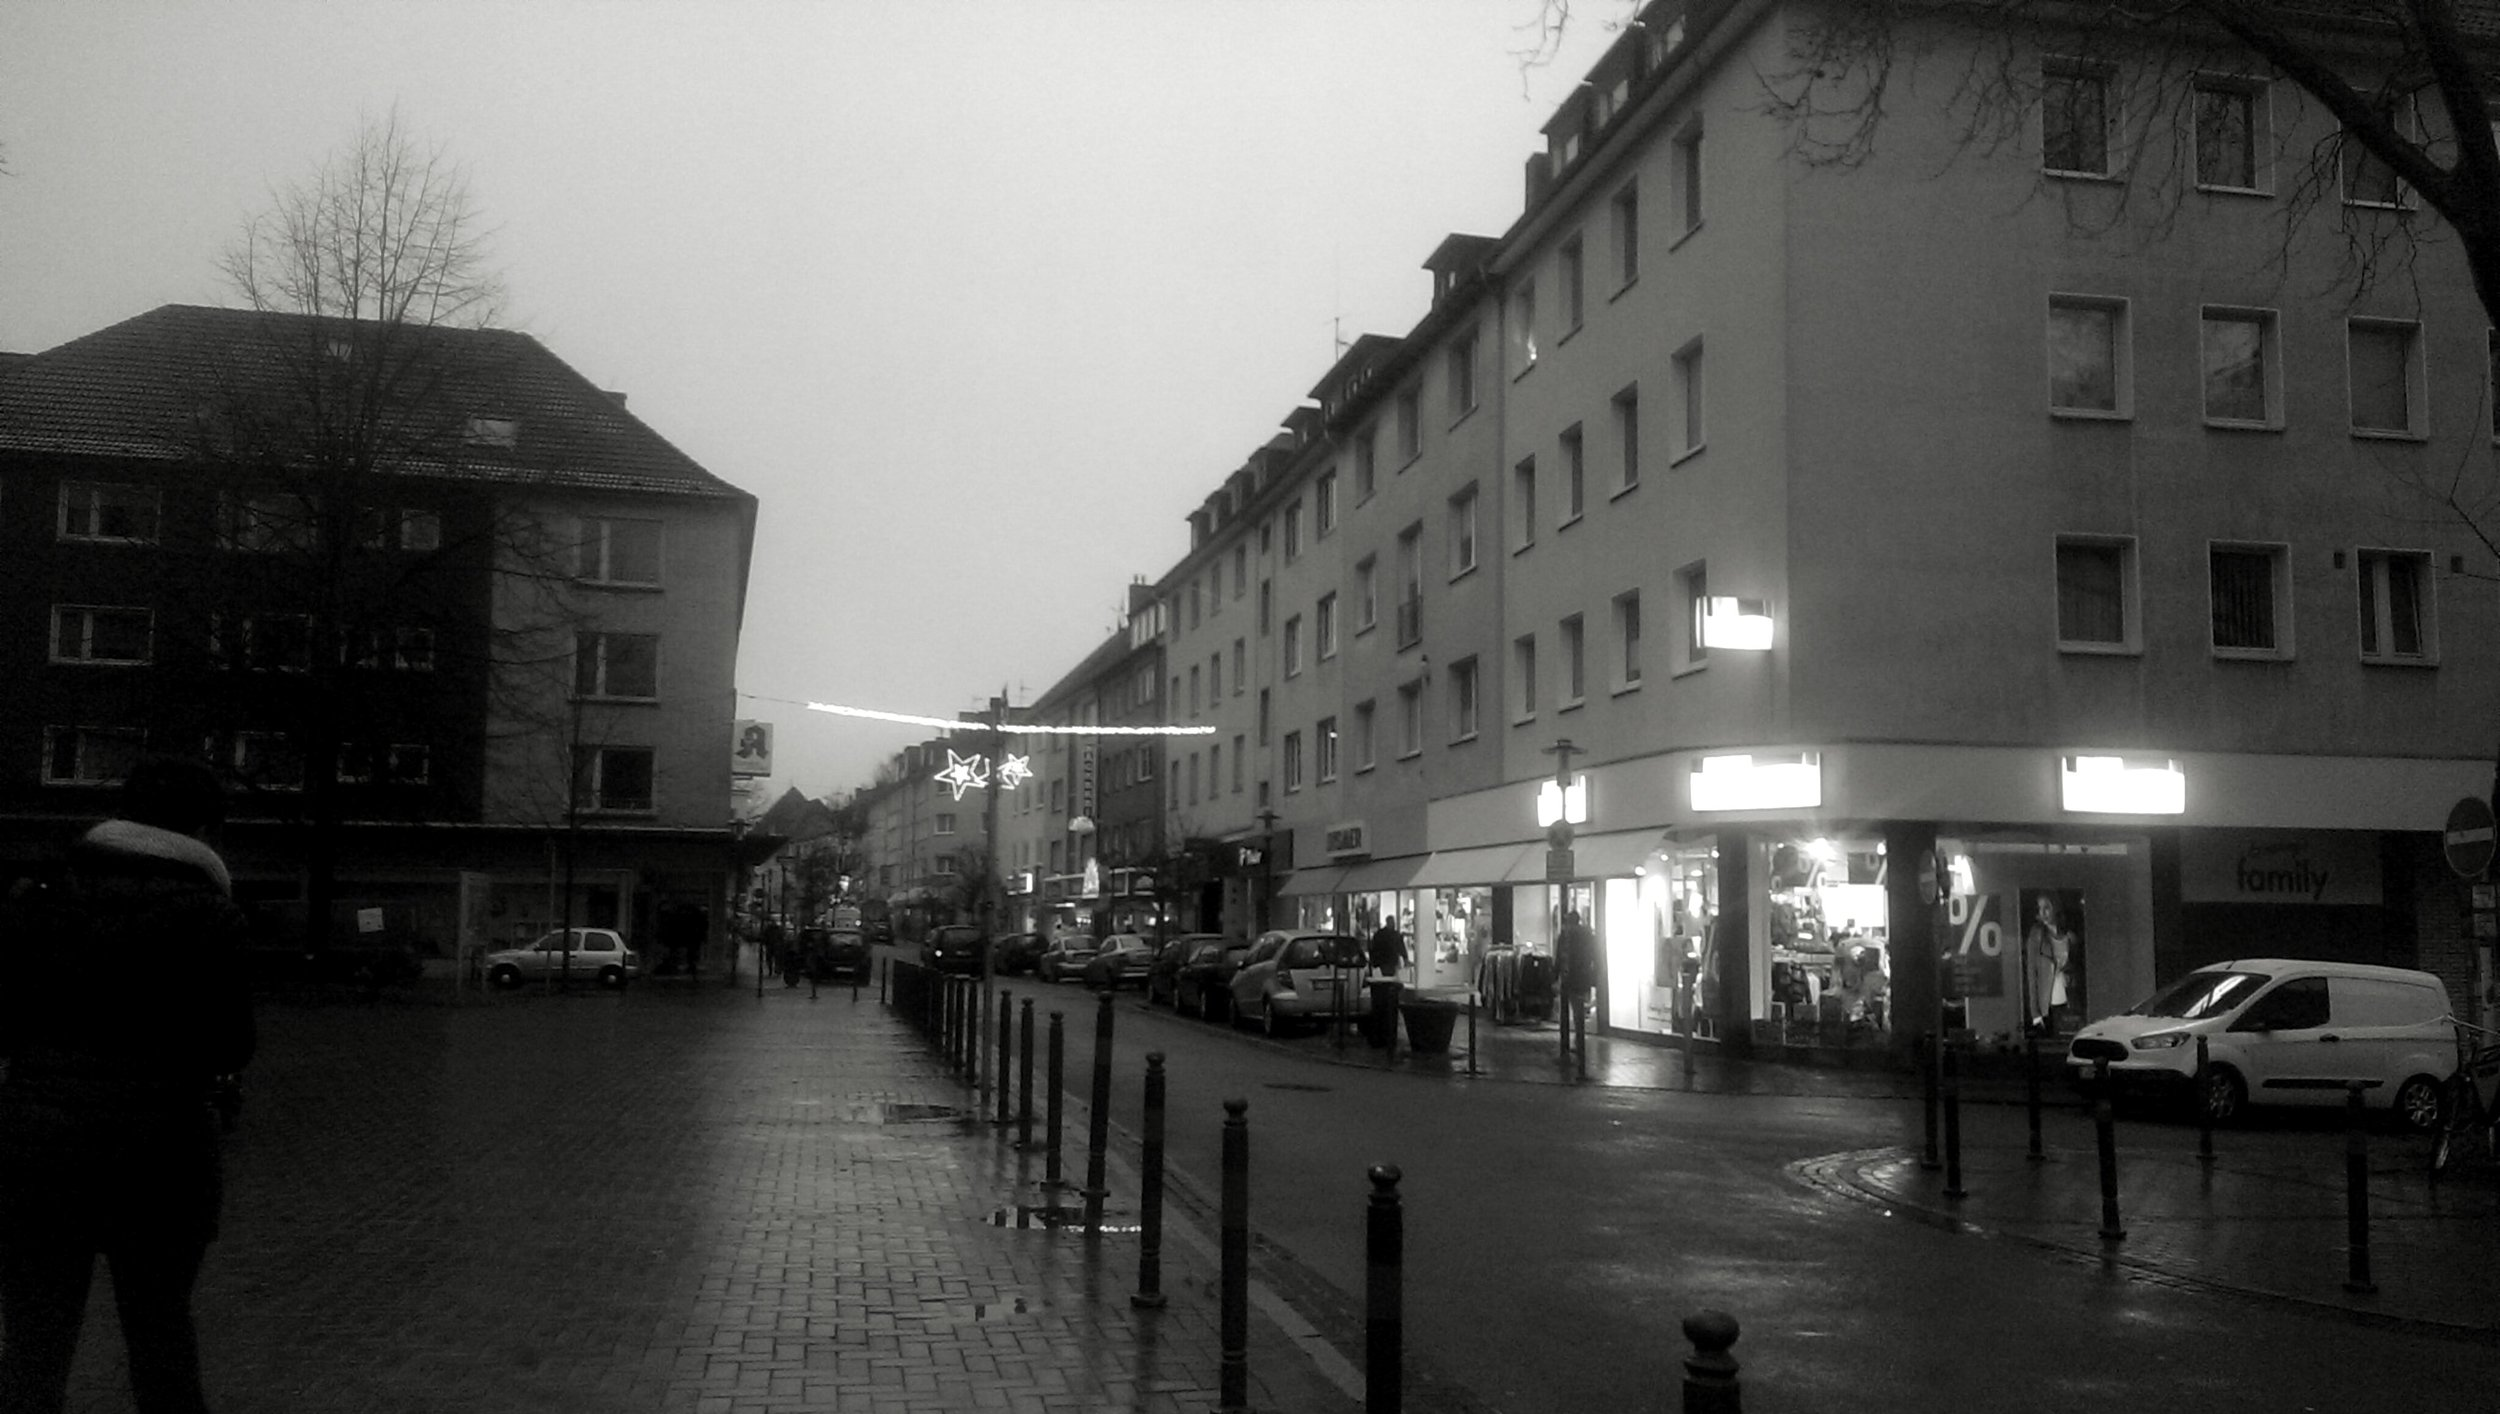 Essen. Not shown: snow flurries, unless you look closely.